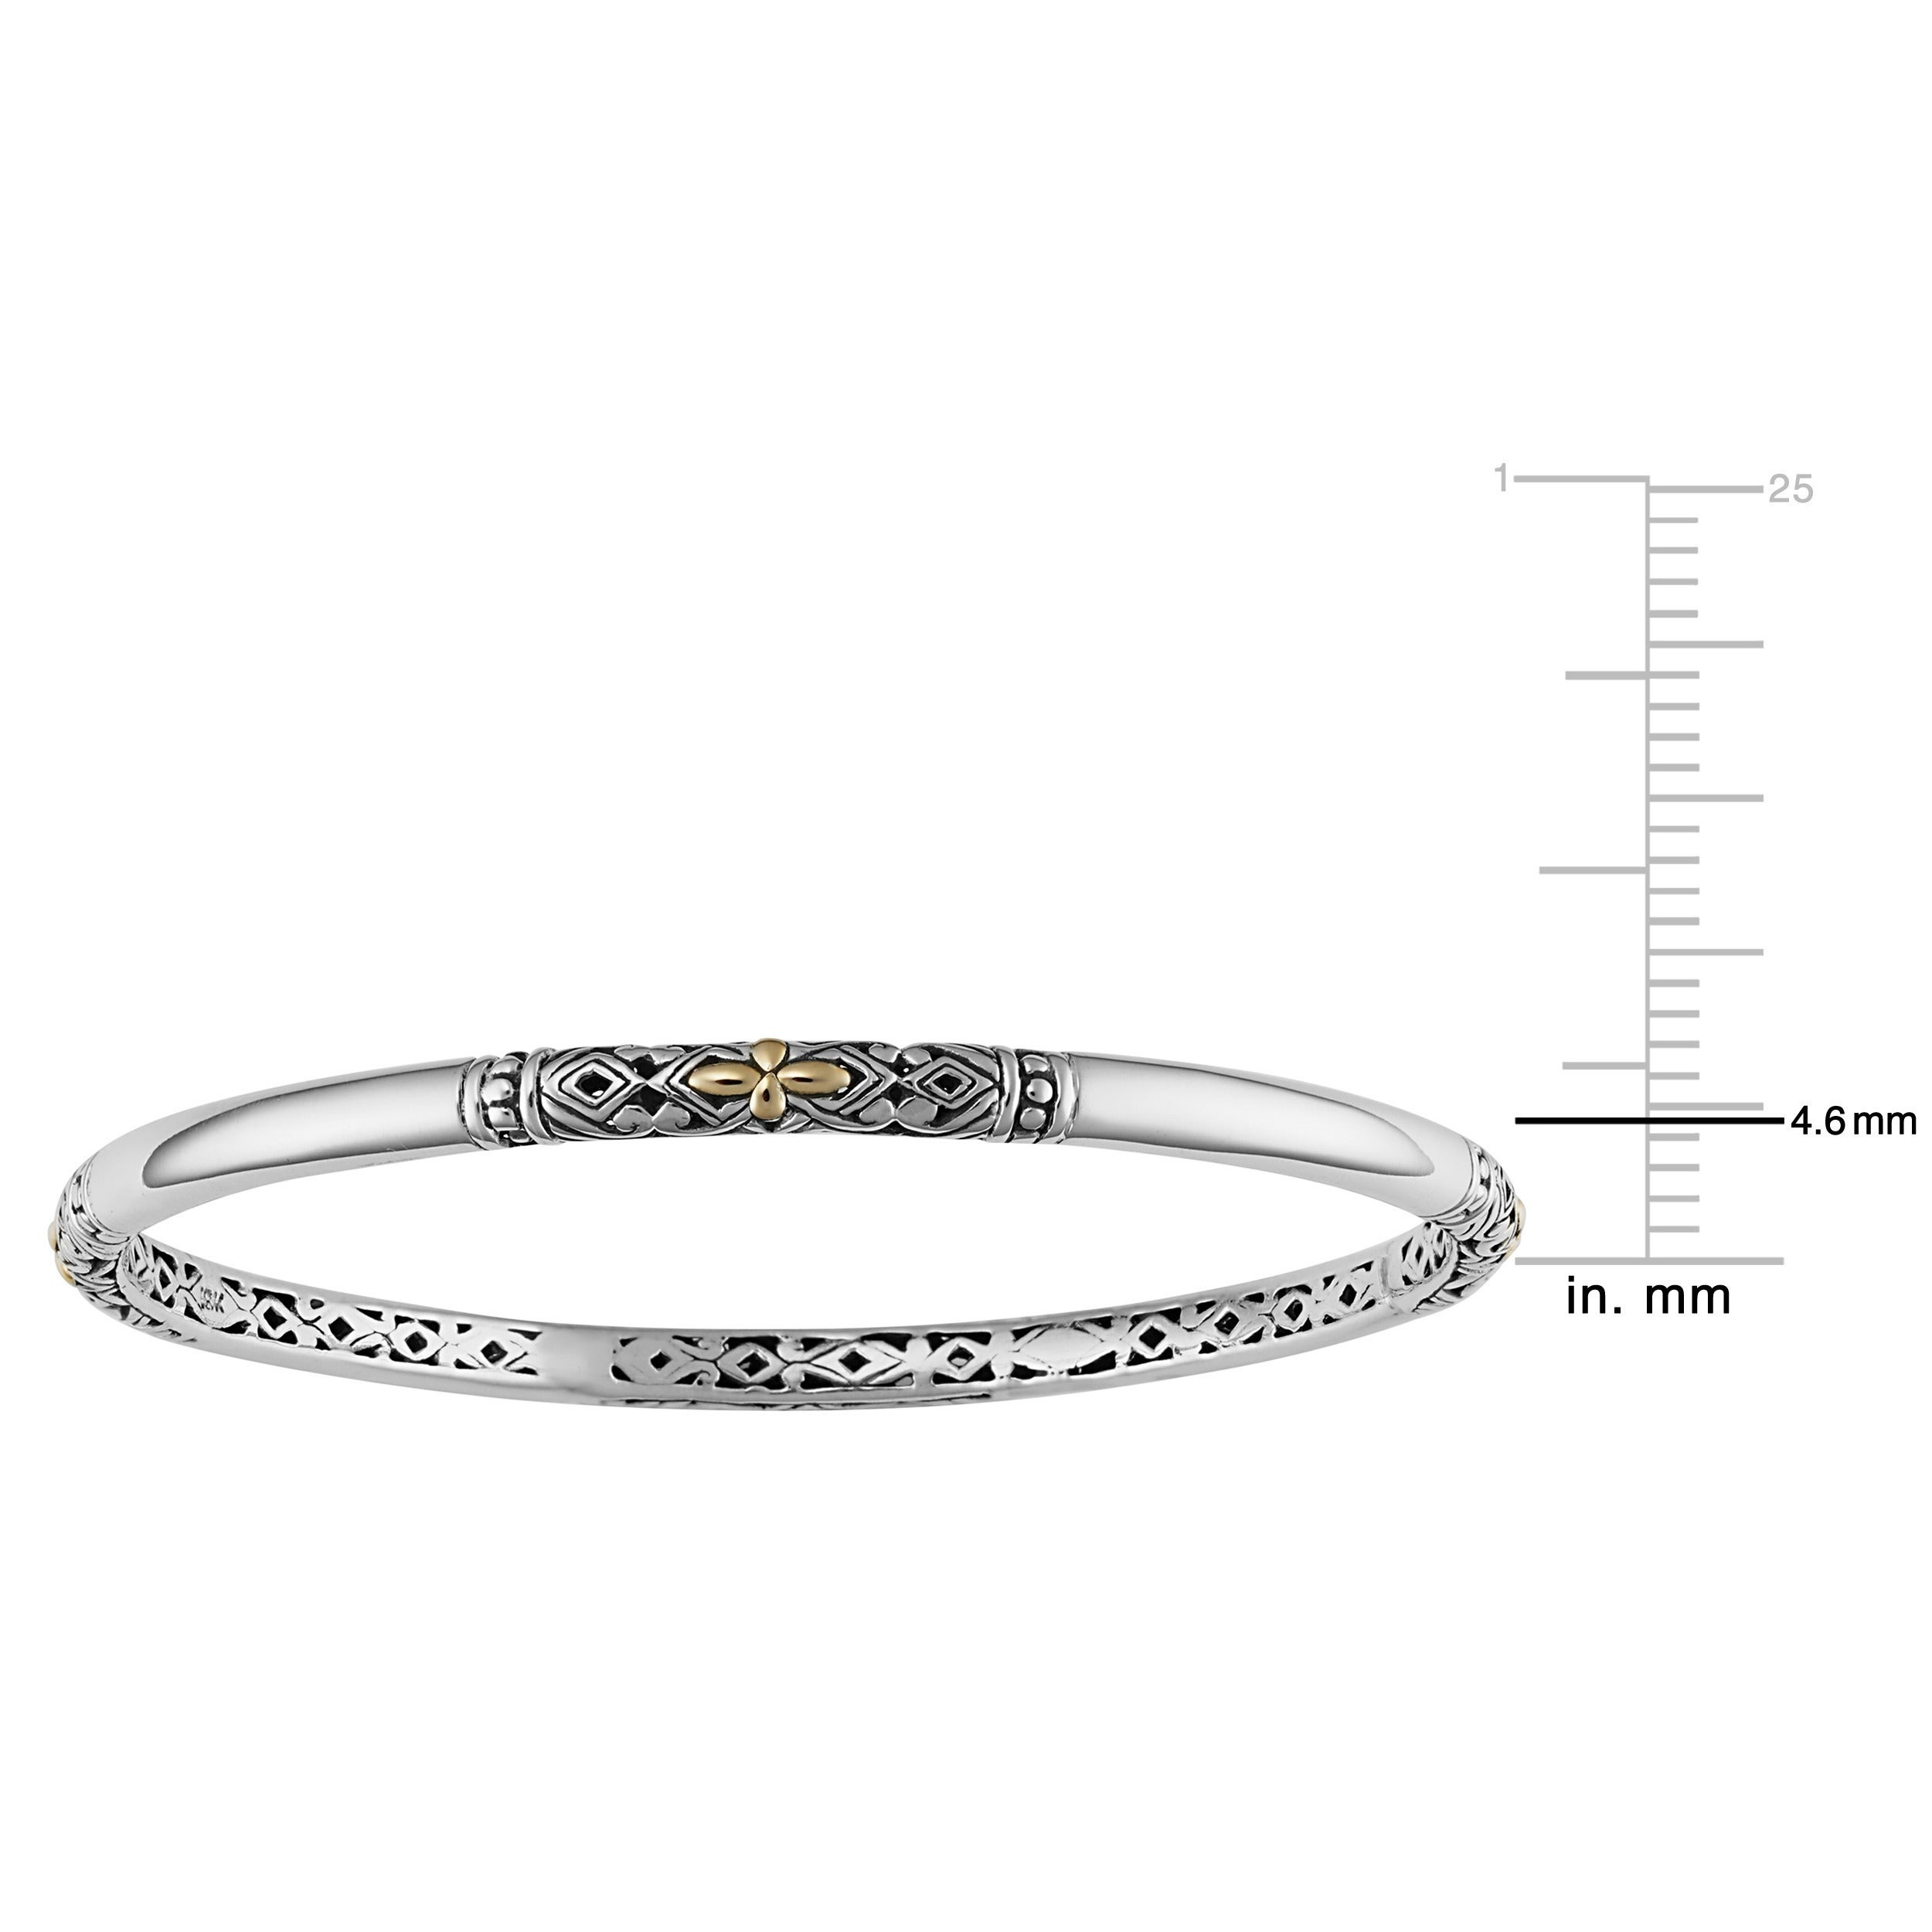 prod jewelry product bangles adamas fine layer w categories bar edited diamond bracelets prodcat